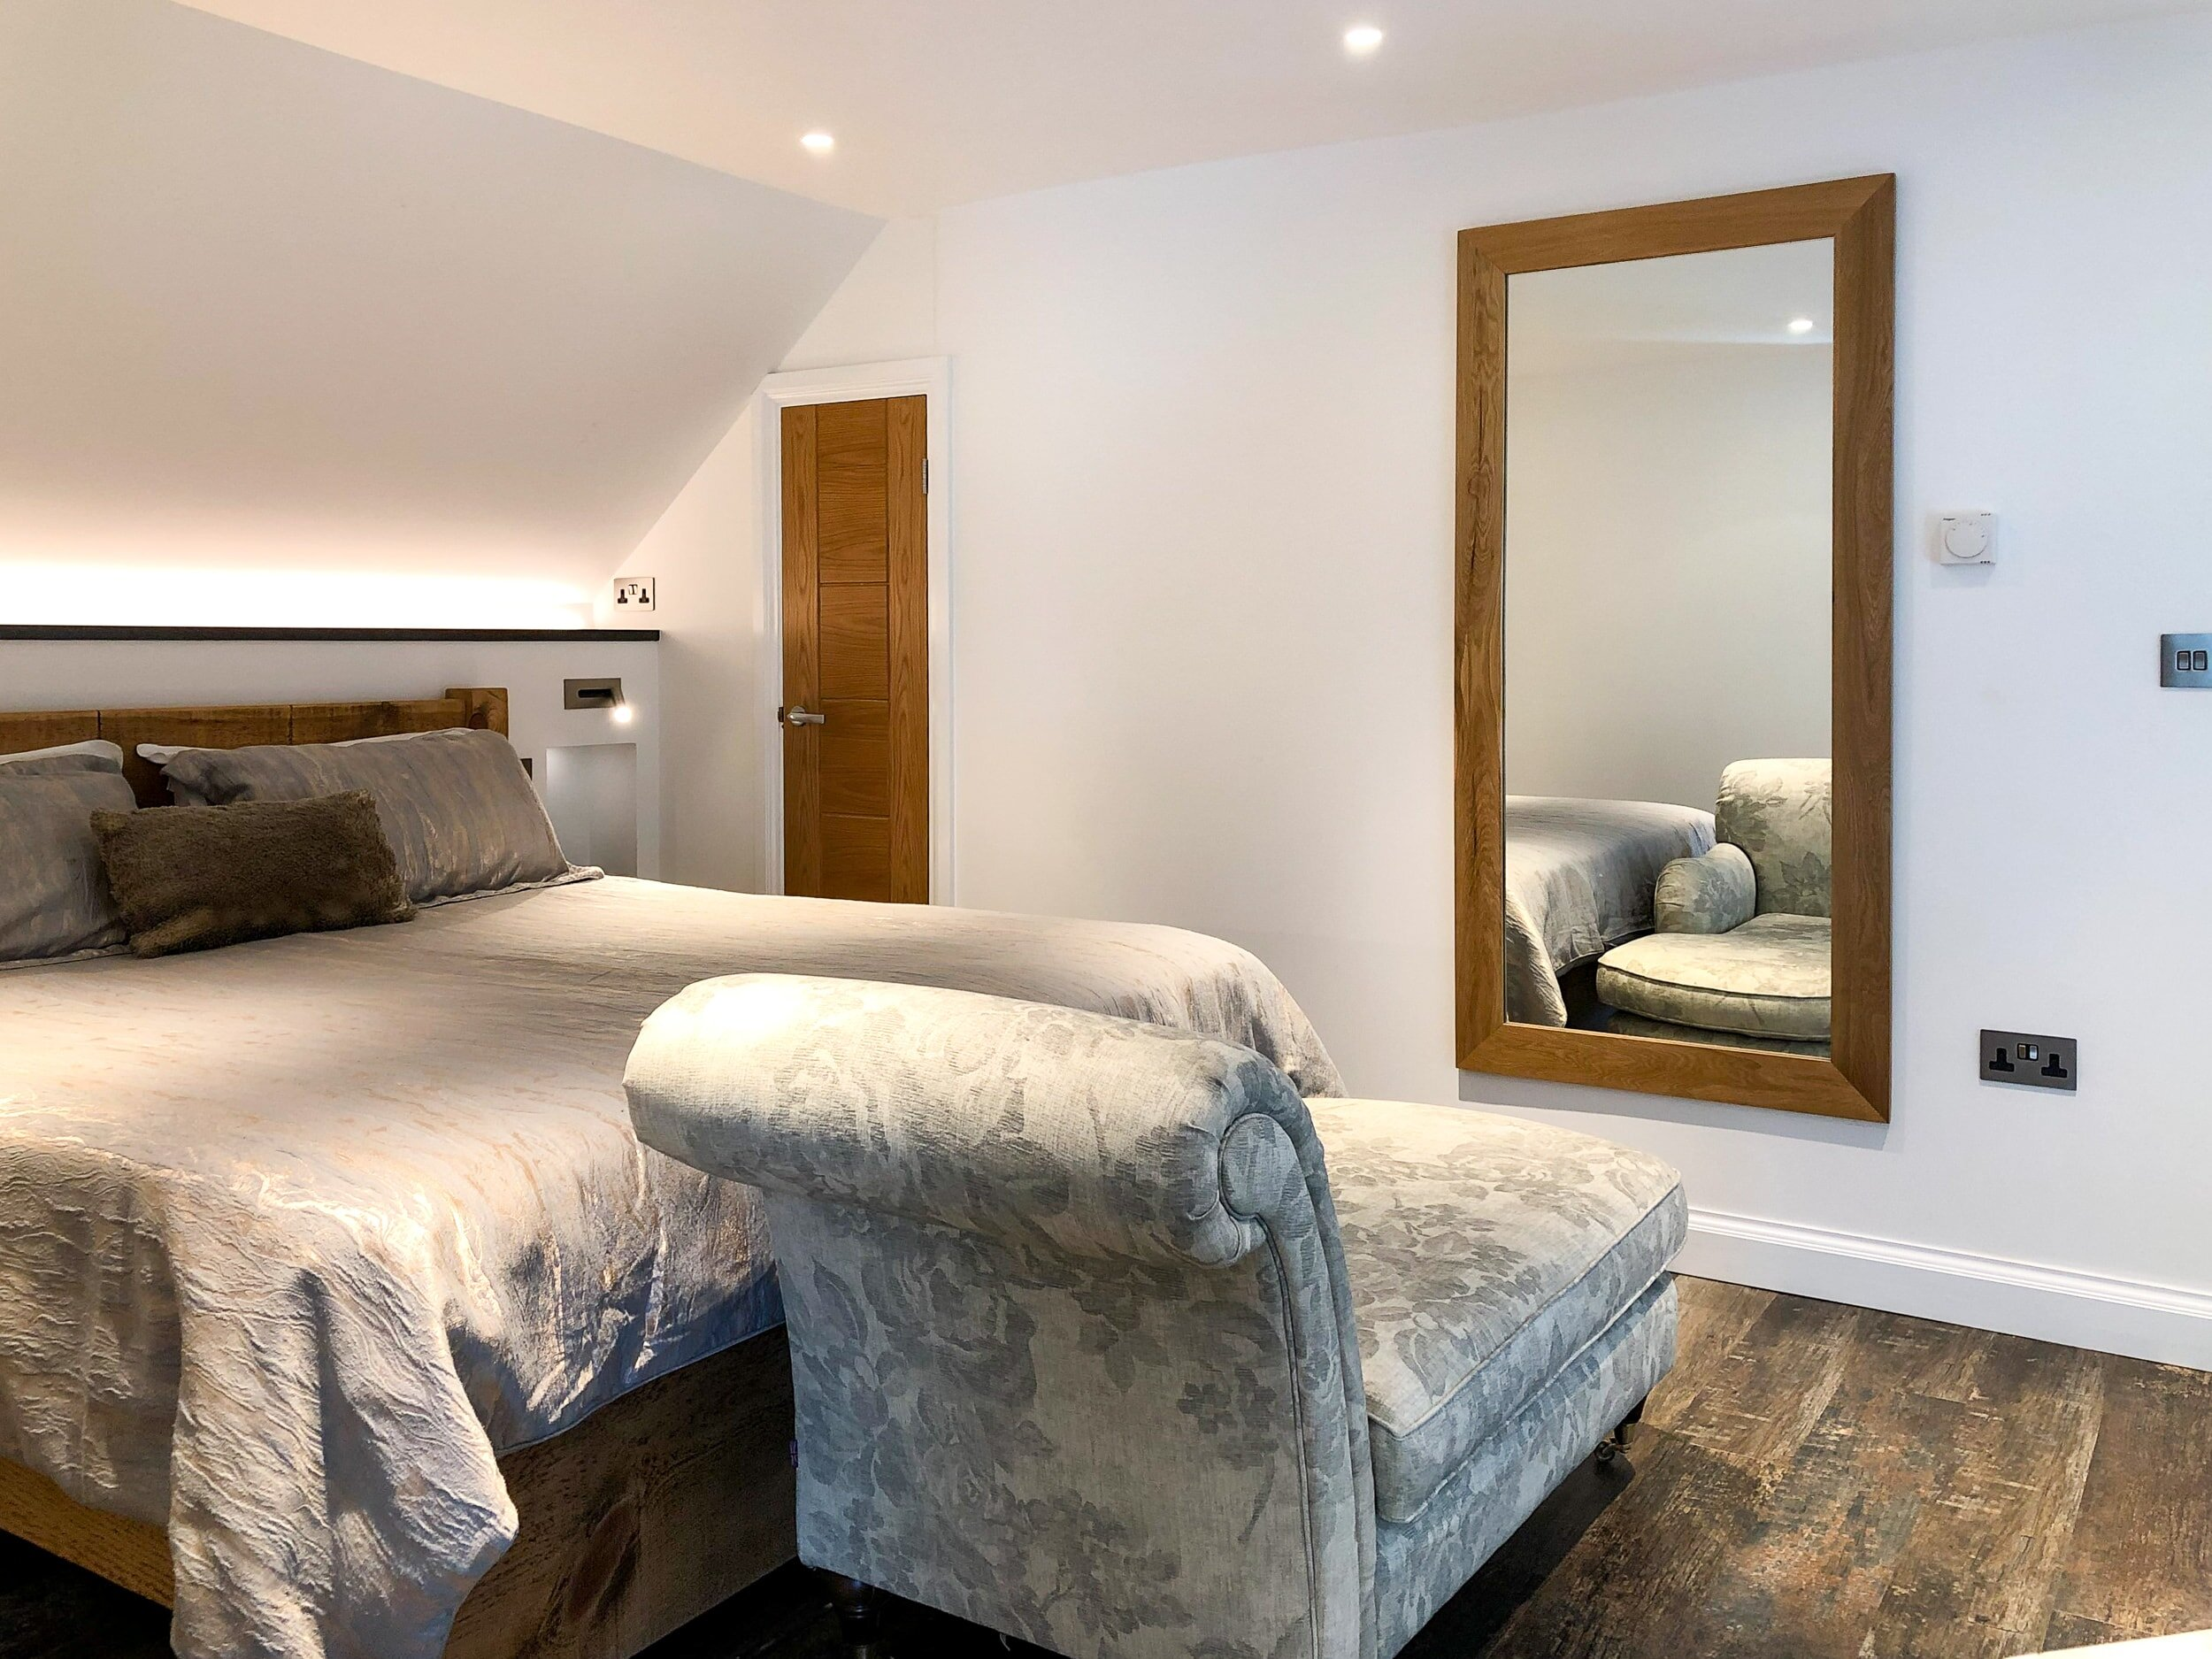 Open plan bedroom with large mirror